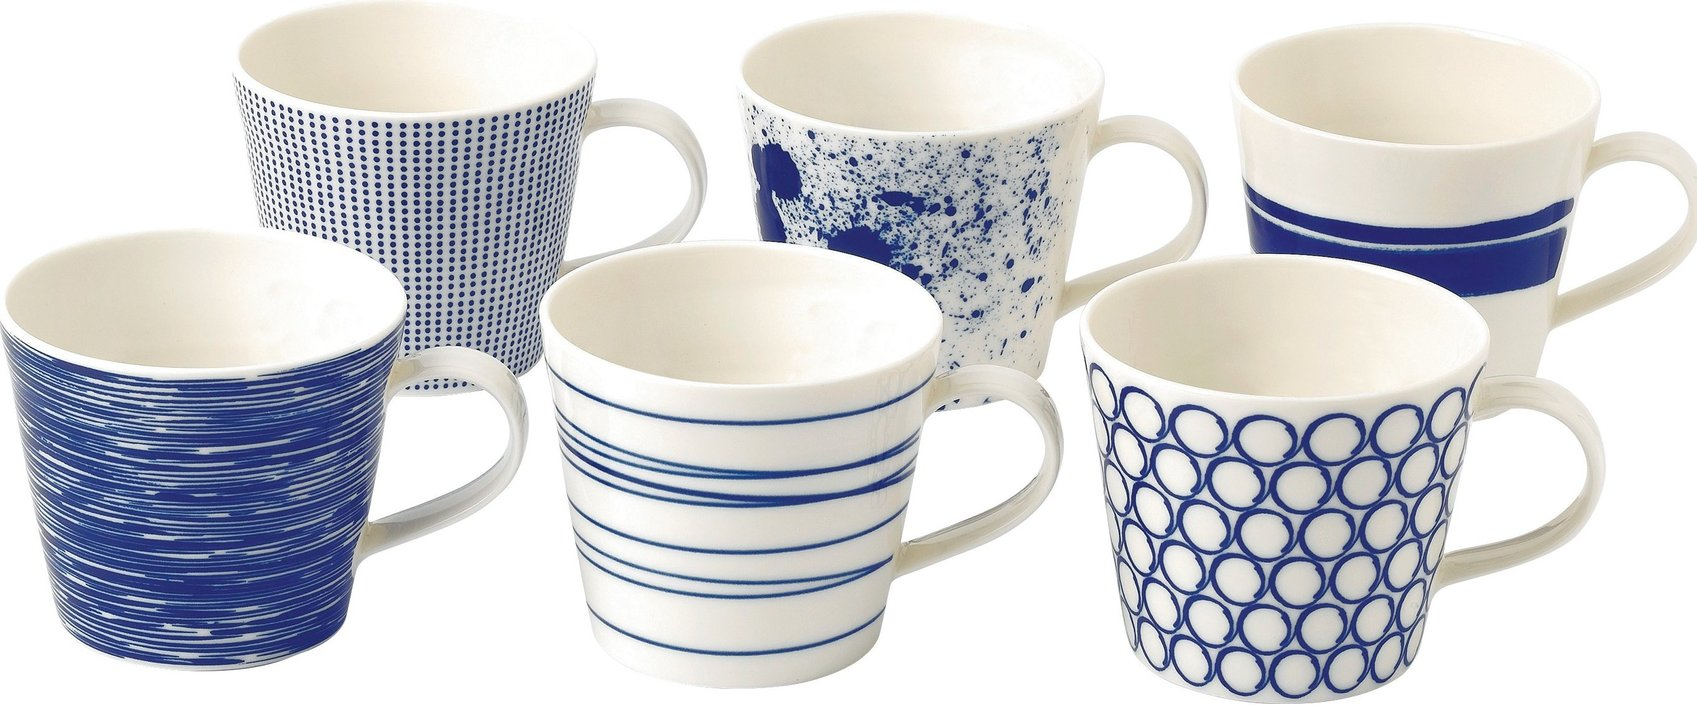 Royal Doulton Pacific Tasse 450ml - Set aus 6